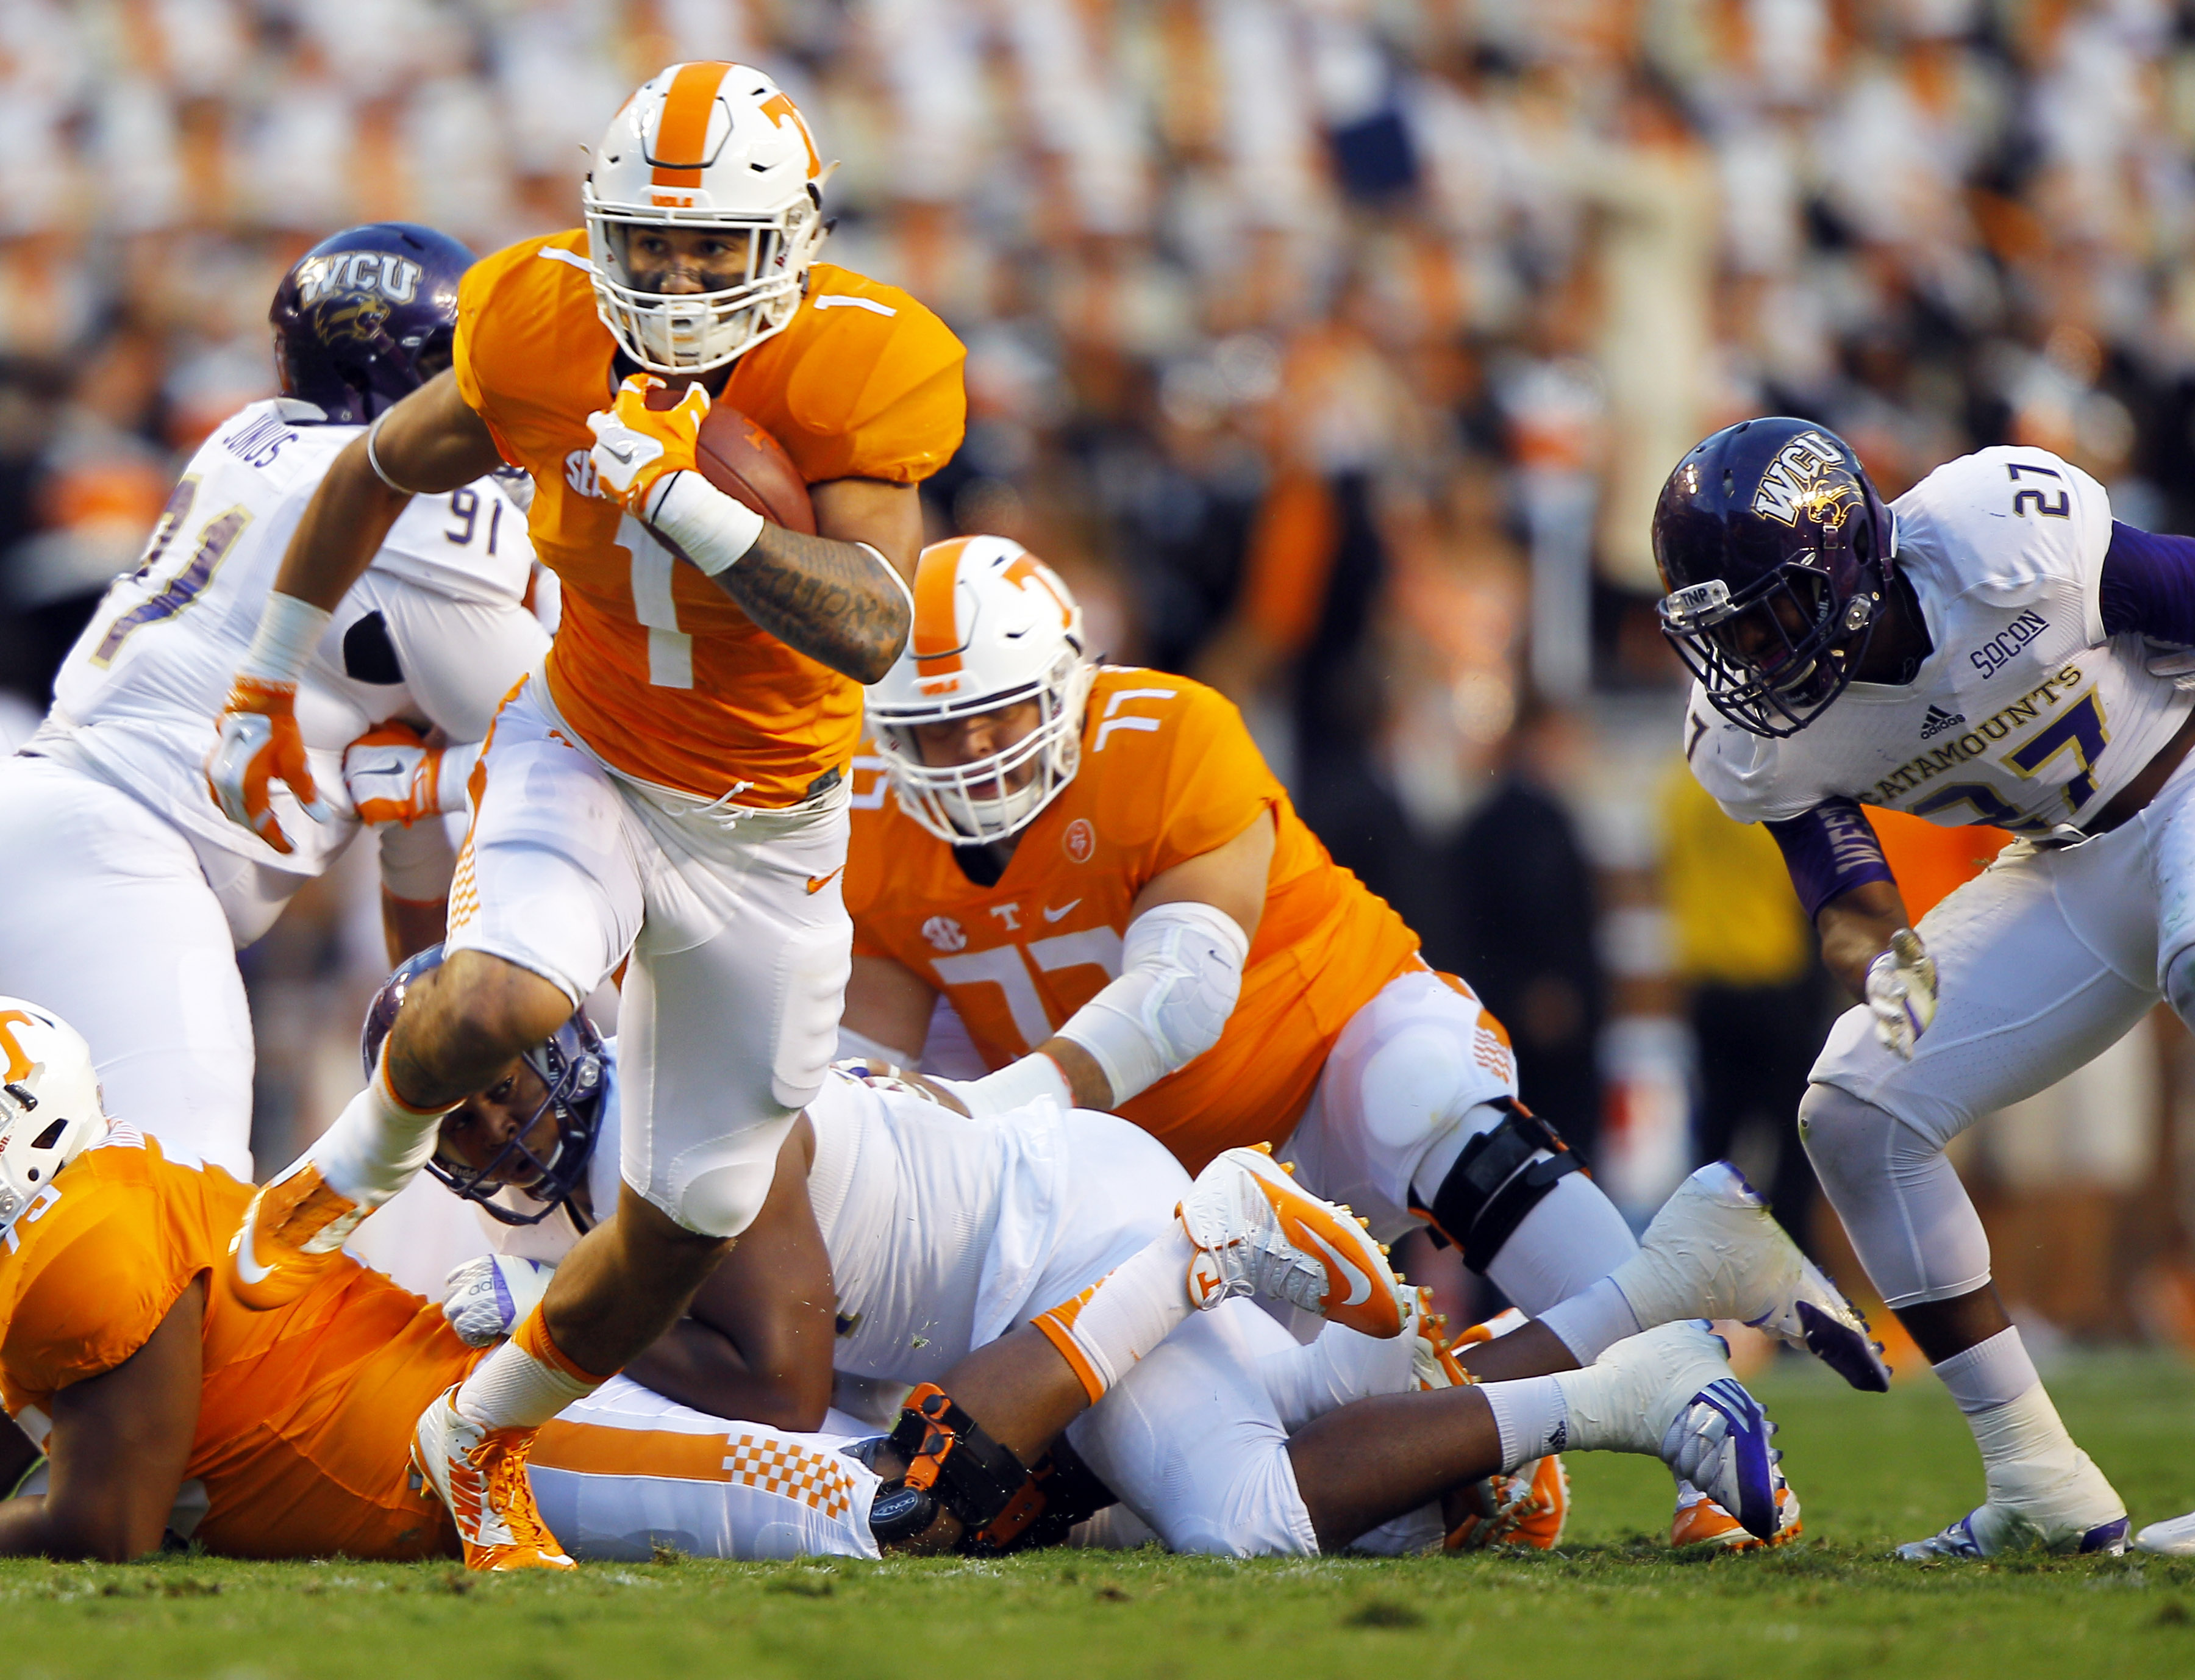 Tennessee running back Jalen Hurd (1) rushes for yardage during the first half of an NCAA college football game against Western Carolina Saturday, Sept. 19, 2015, in Knoxville, Tenn. (AP Photo/Wade Payne)